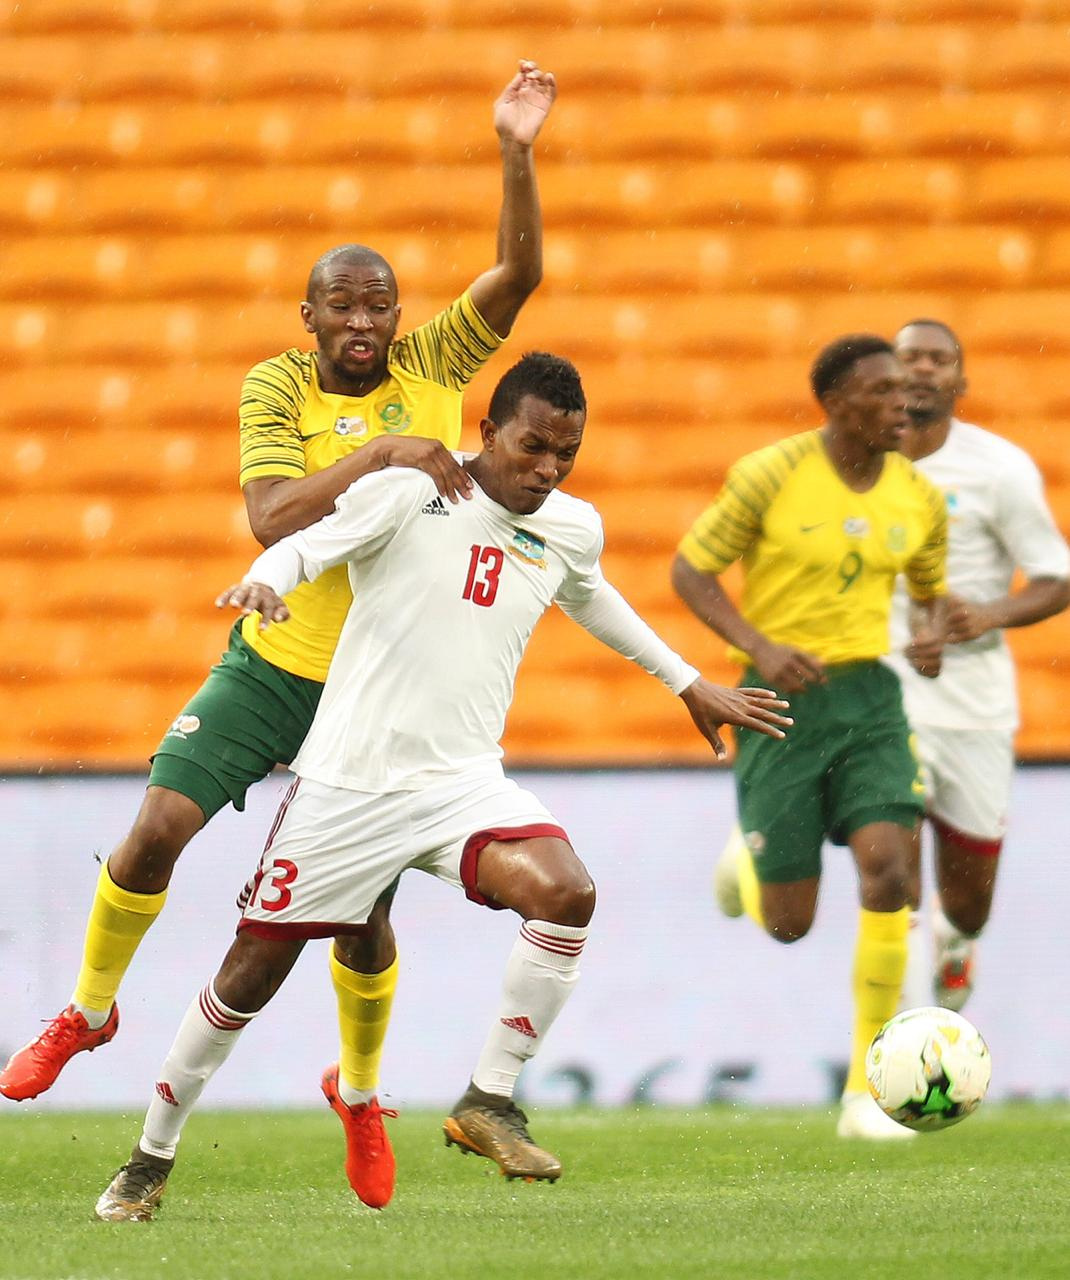 AFCON 2019 Qualifiers: Seychelles Hold Bafana In Victoria, Bag First Point